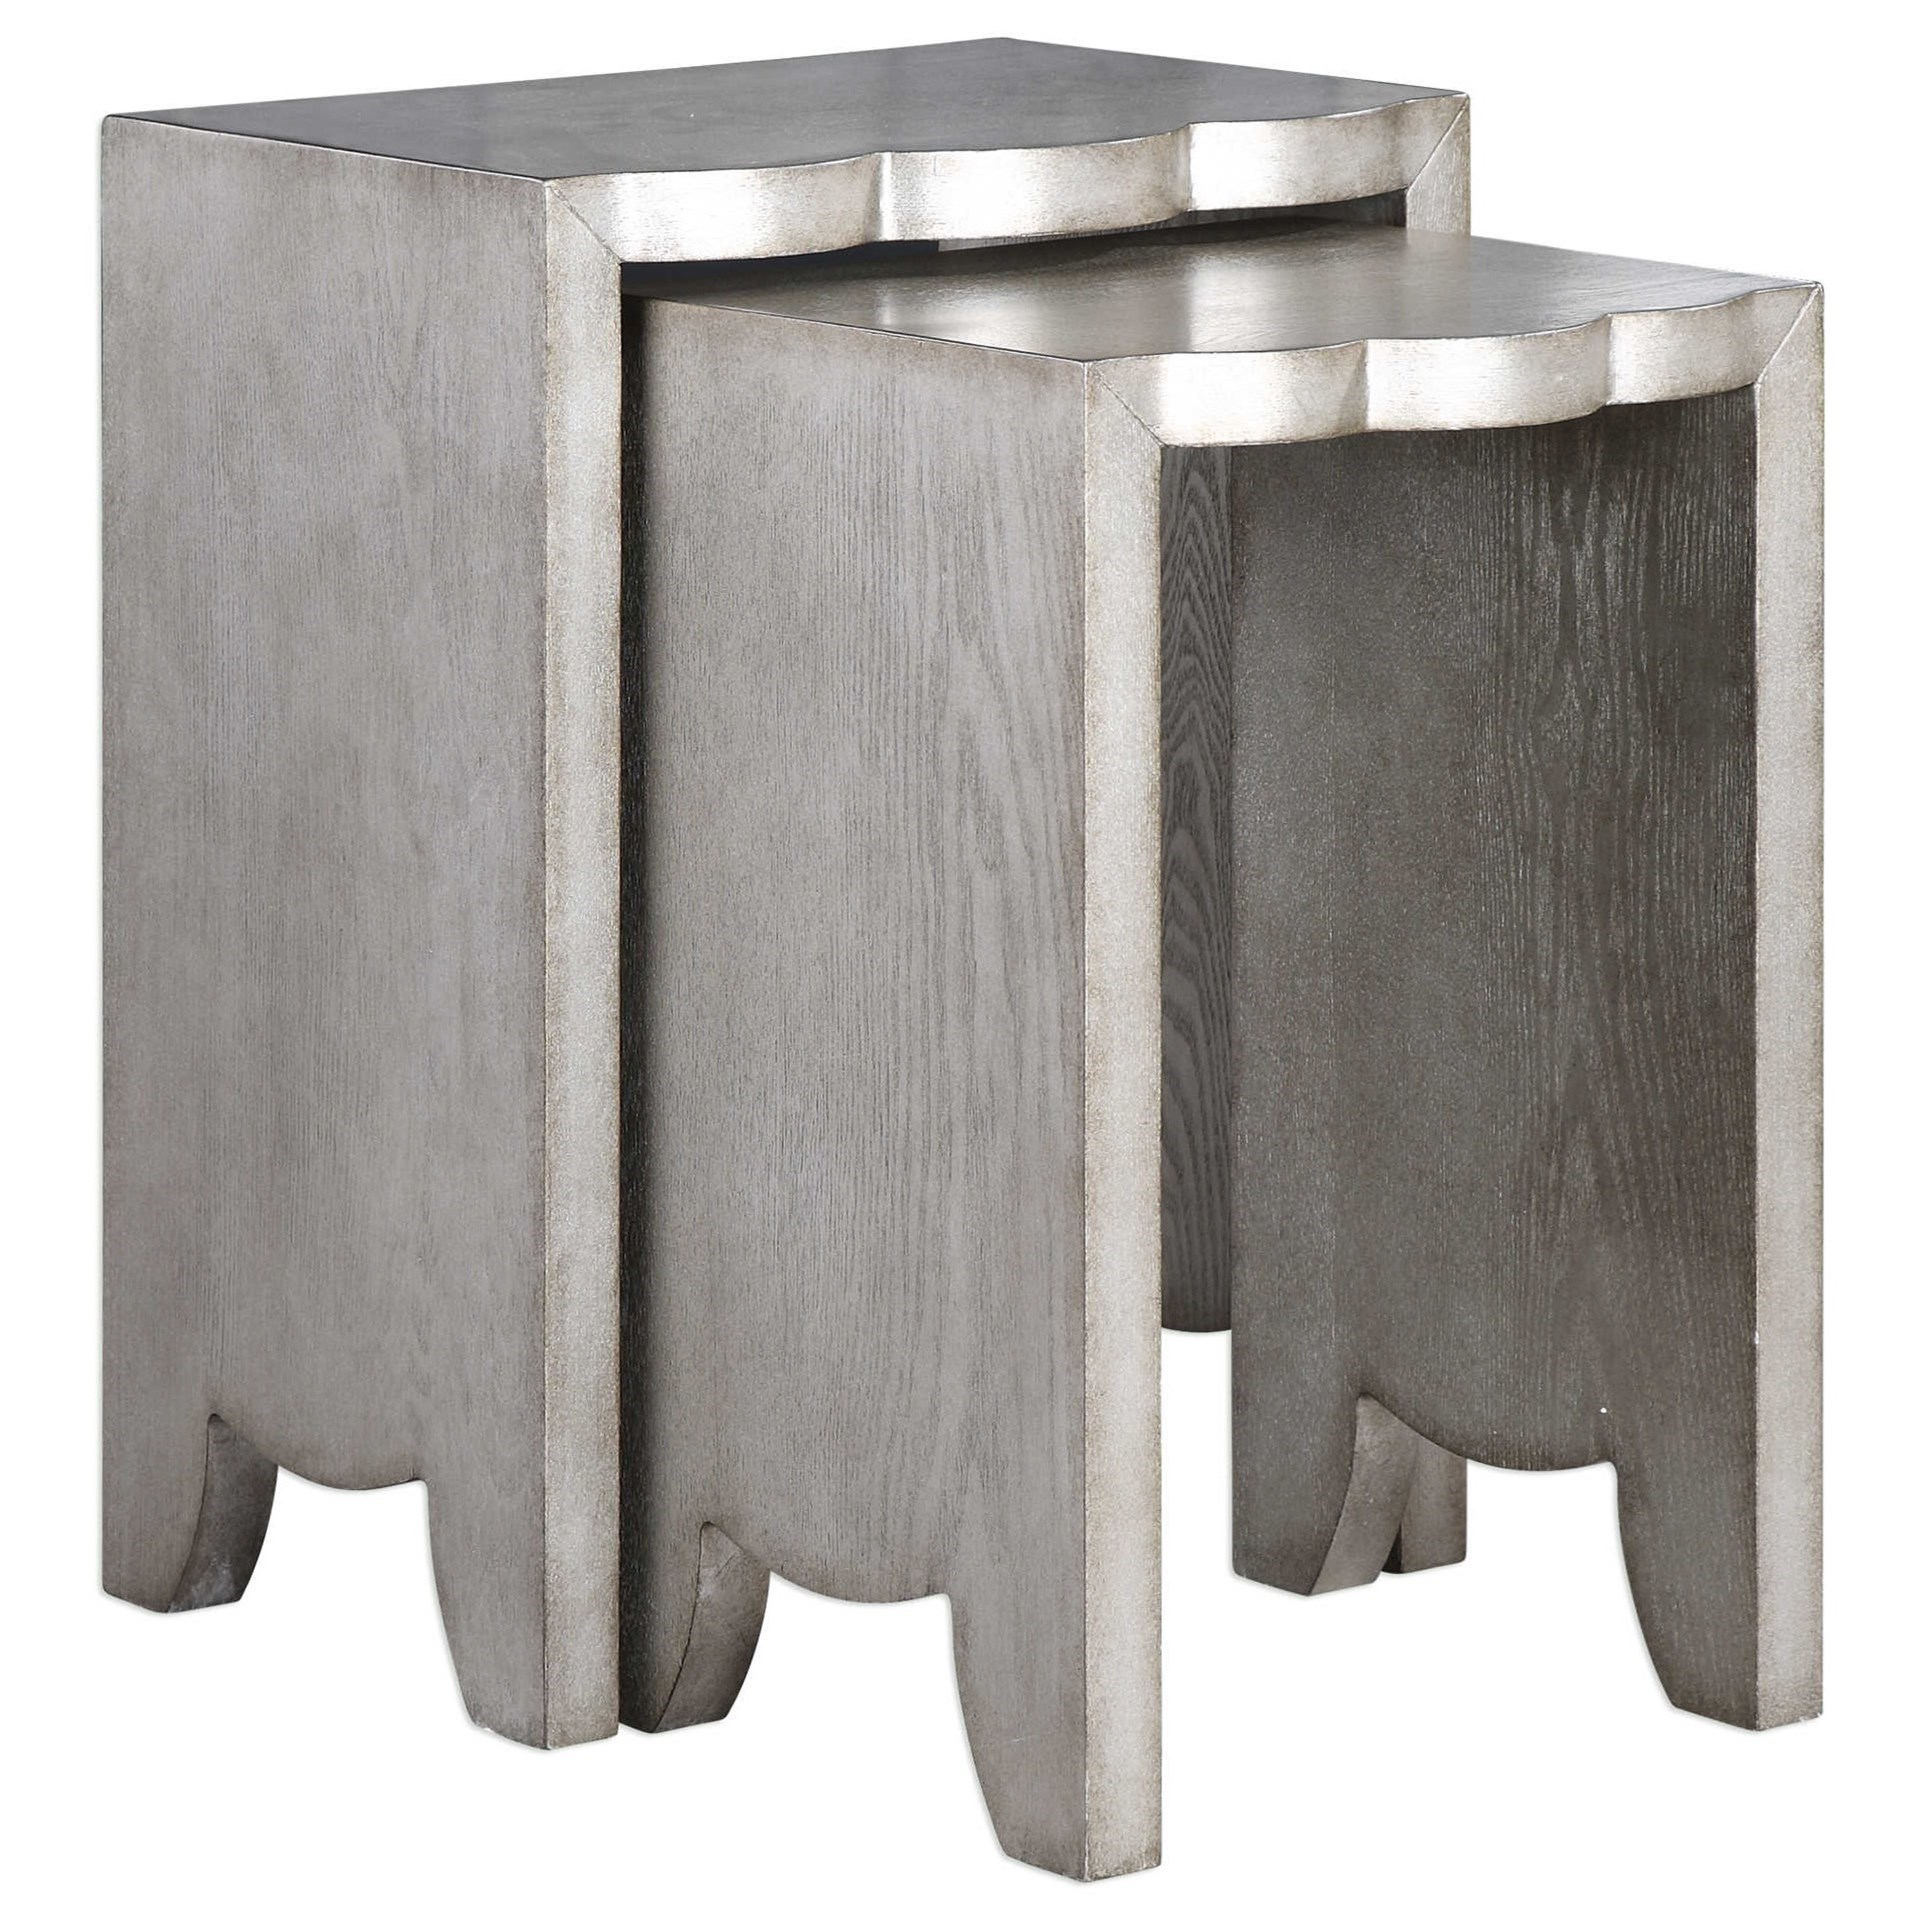 Accent Furniture - Occasional Tables Imala Natural Ash Nesting Tables (Set of 2) by Uttermost at Mueller Furniture